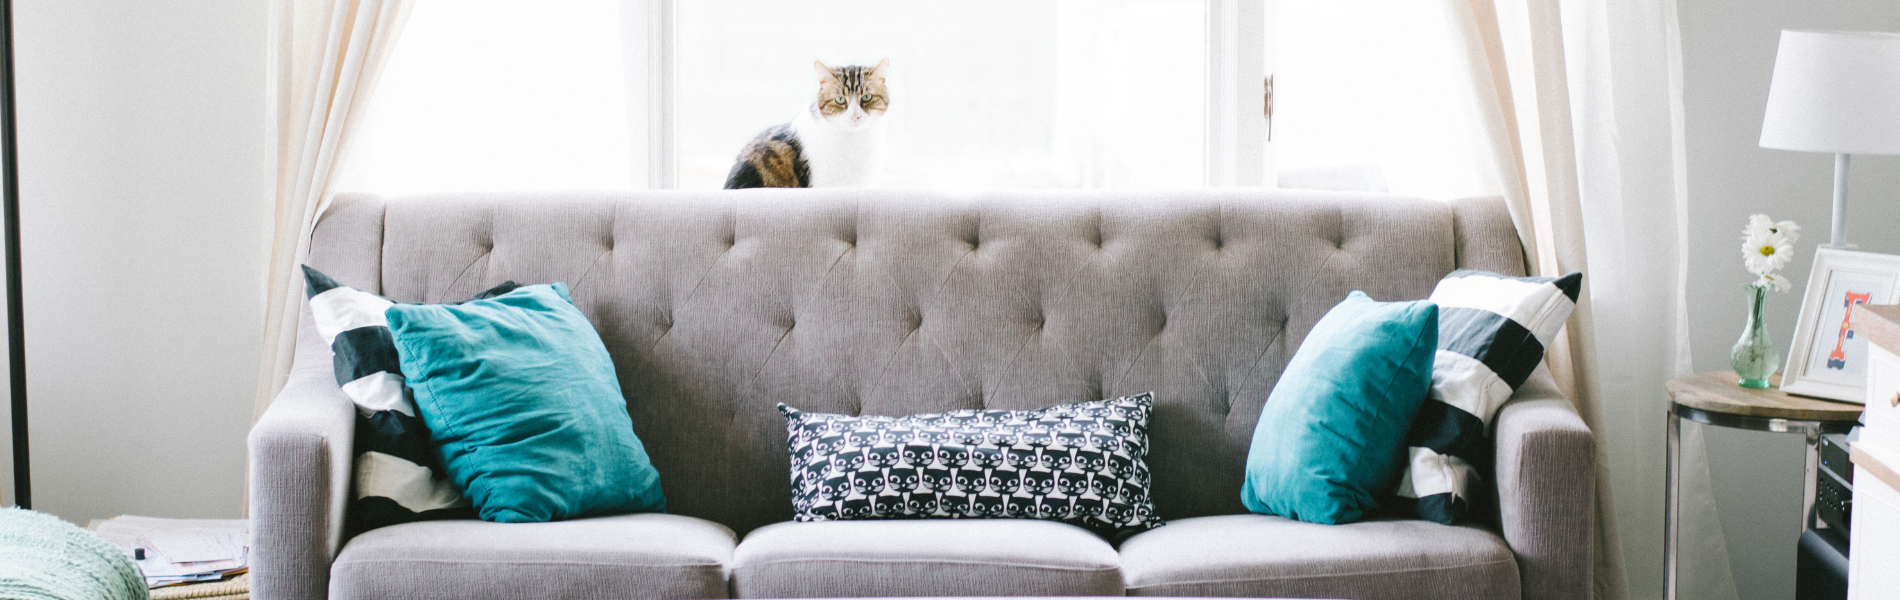 couch - How to Clean Microfiber Couches